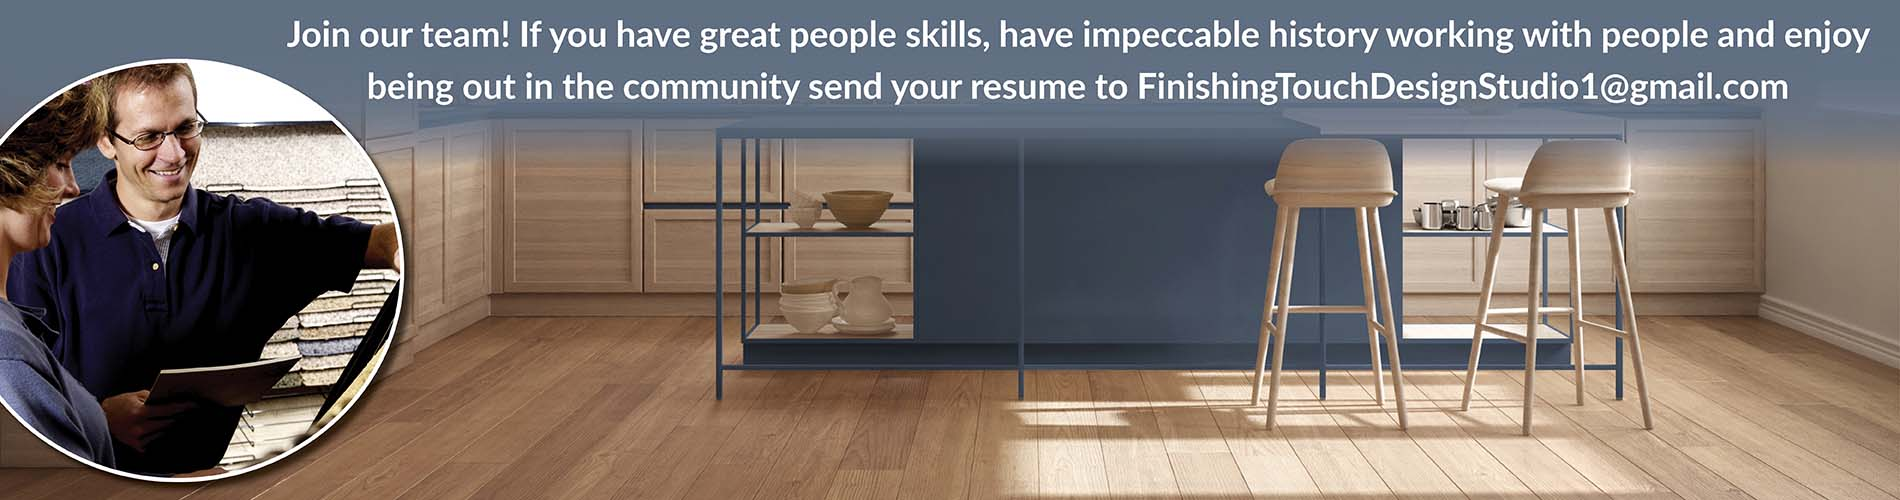 Join our team, if you have great people skills and have impeccable history working with people and enjoy being out in the community send resume to FinishingTouchDesignStudio1@gmail.com